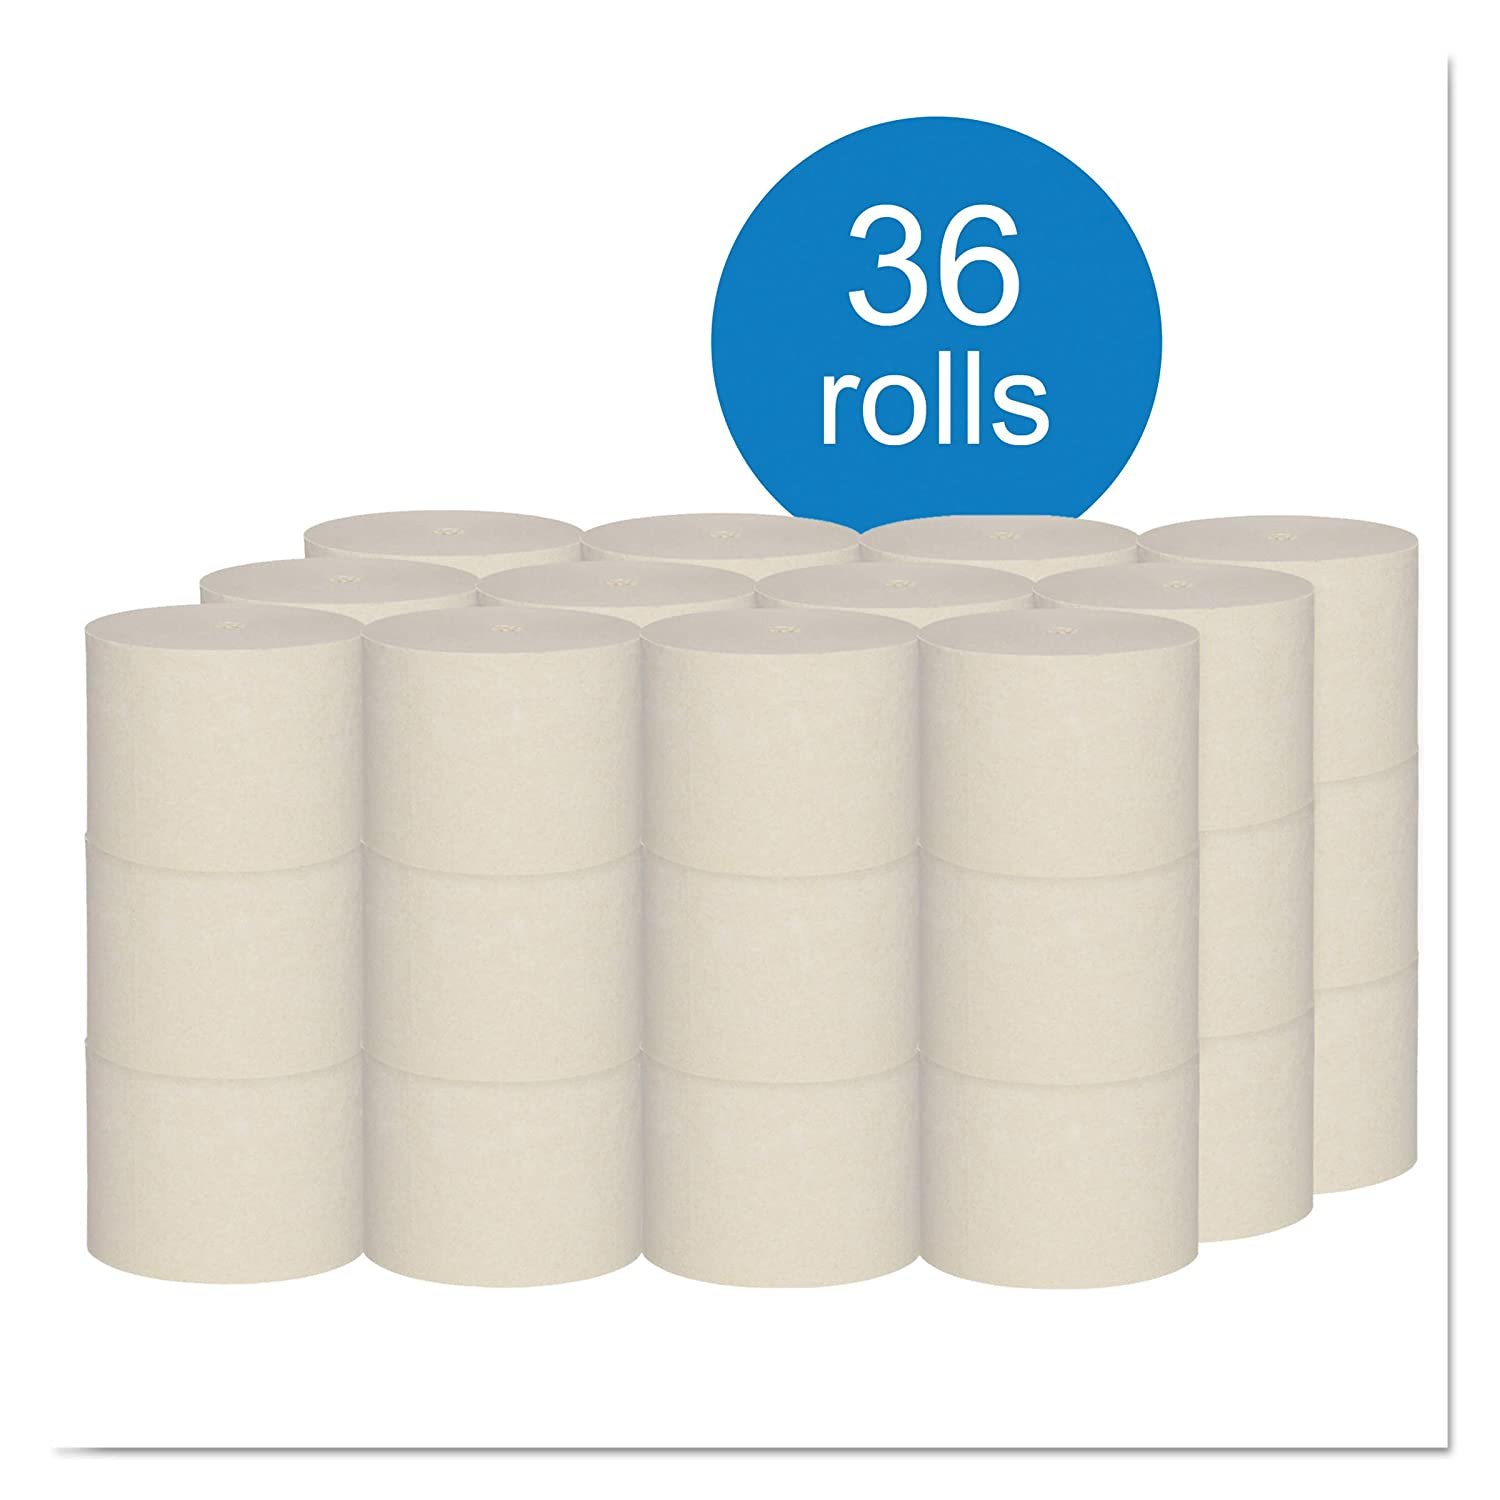 Amazon.com: Scott 43851 Coreless Standard Roll Bath Tissue w/Plant Fiber, 2-Ply, 1000 per Roll (Case of 36 Rolls): Industrial & Scientific